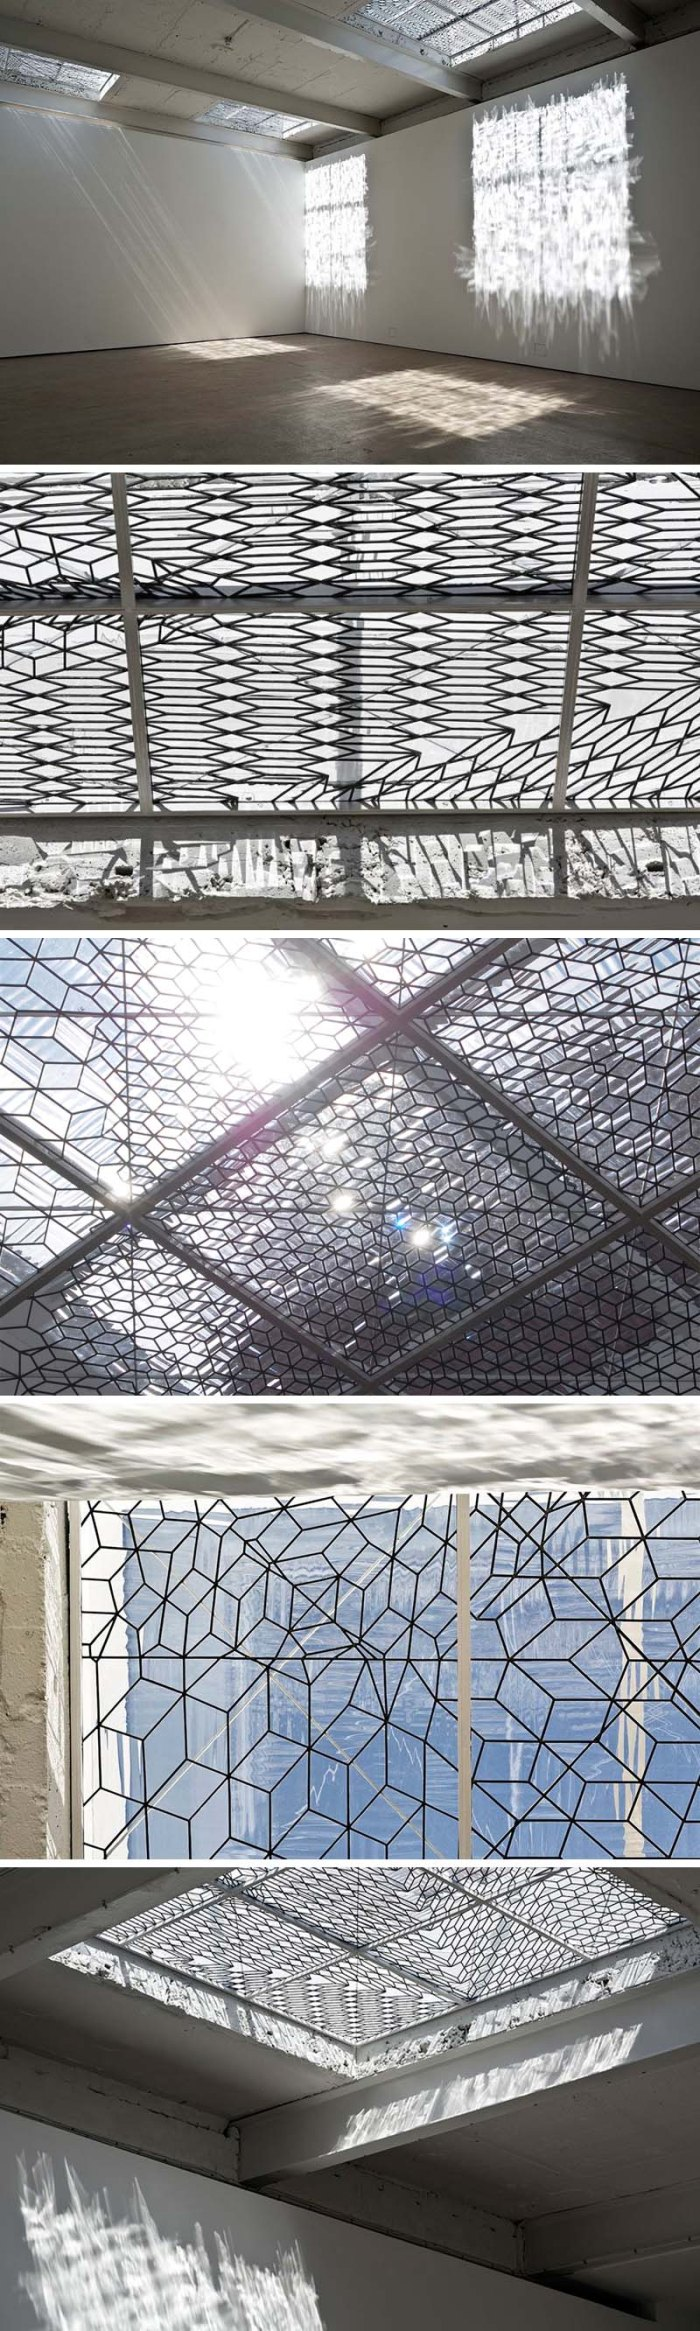 Richard Wright, Modern Institute, Aird's Lane glass skylight installation